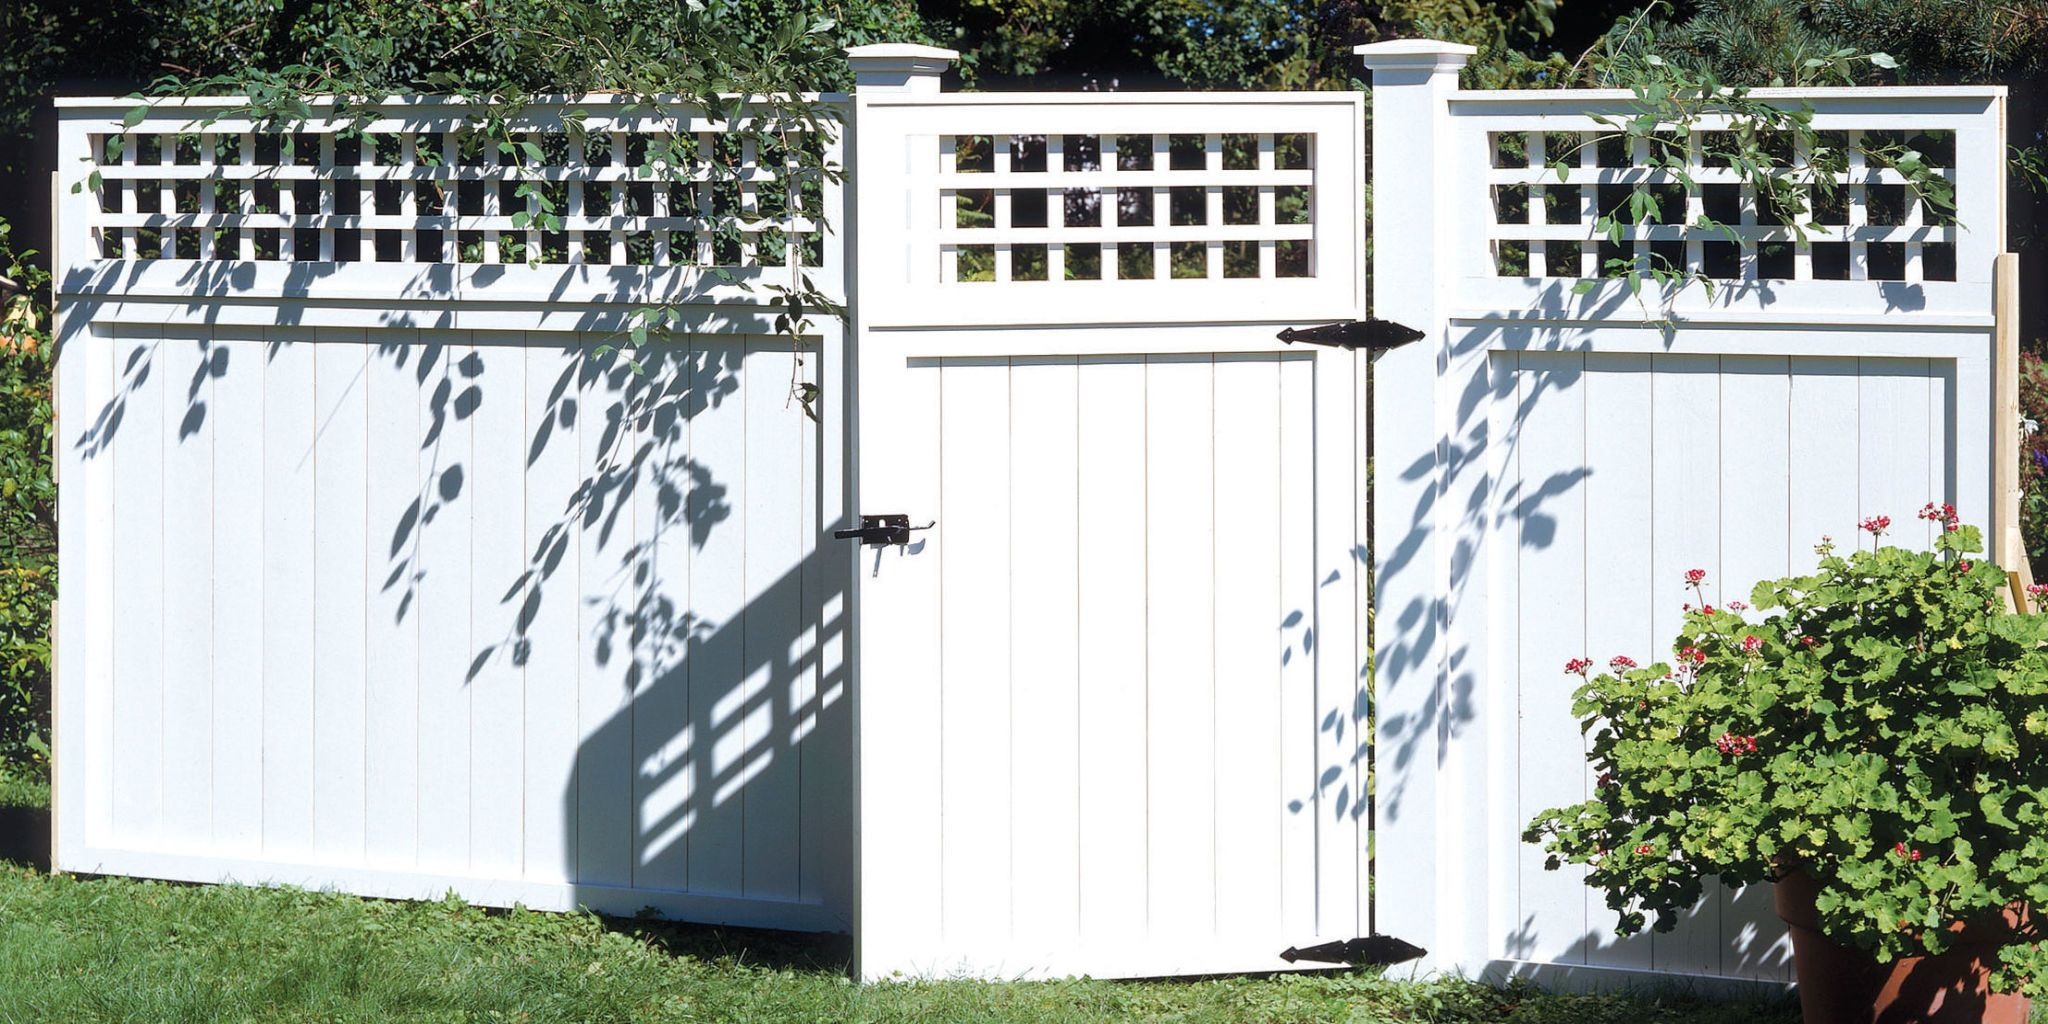 Weu0027ll Show You How To Build A Fence, If You Just Want To Keep Out The  Neighboru0027s Dog, Or To Define Your Personal Landscape With A Touch Of  Architectural ...